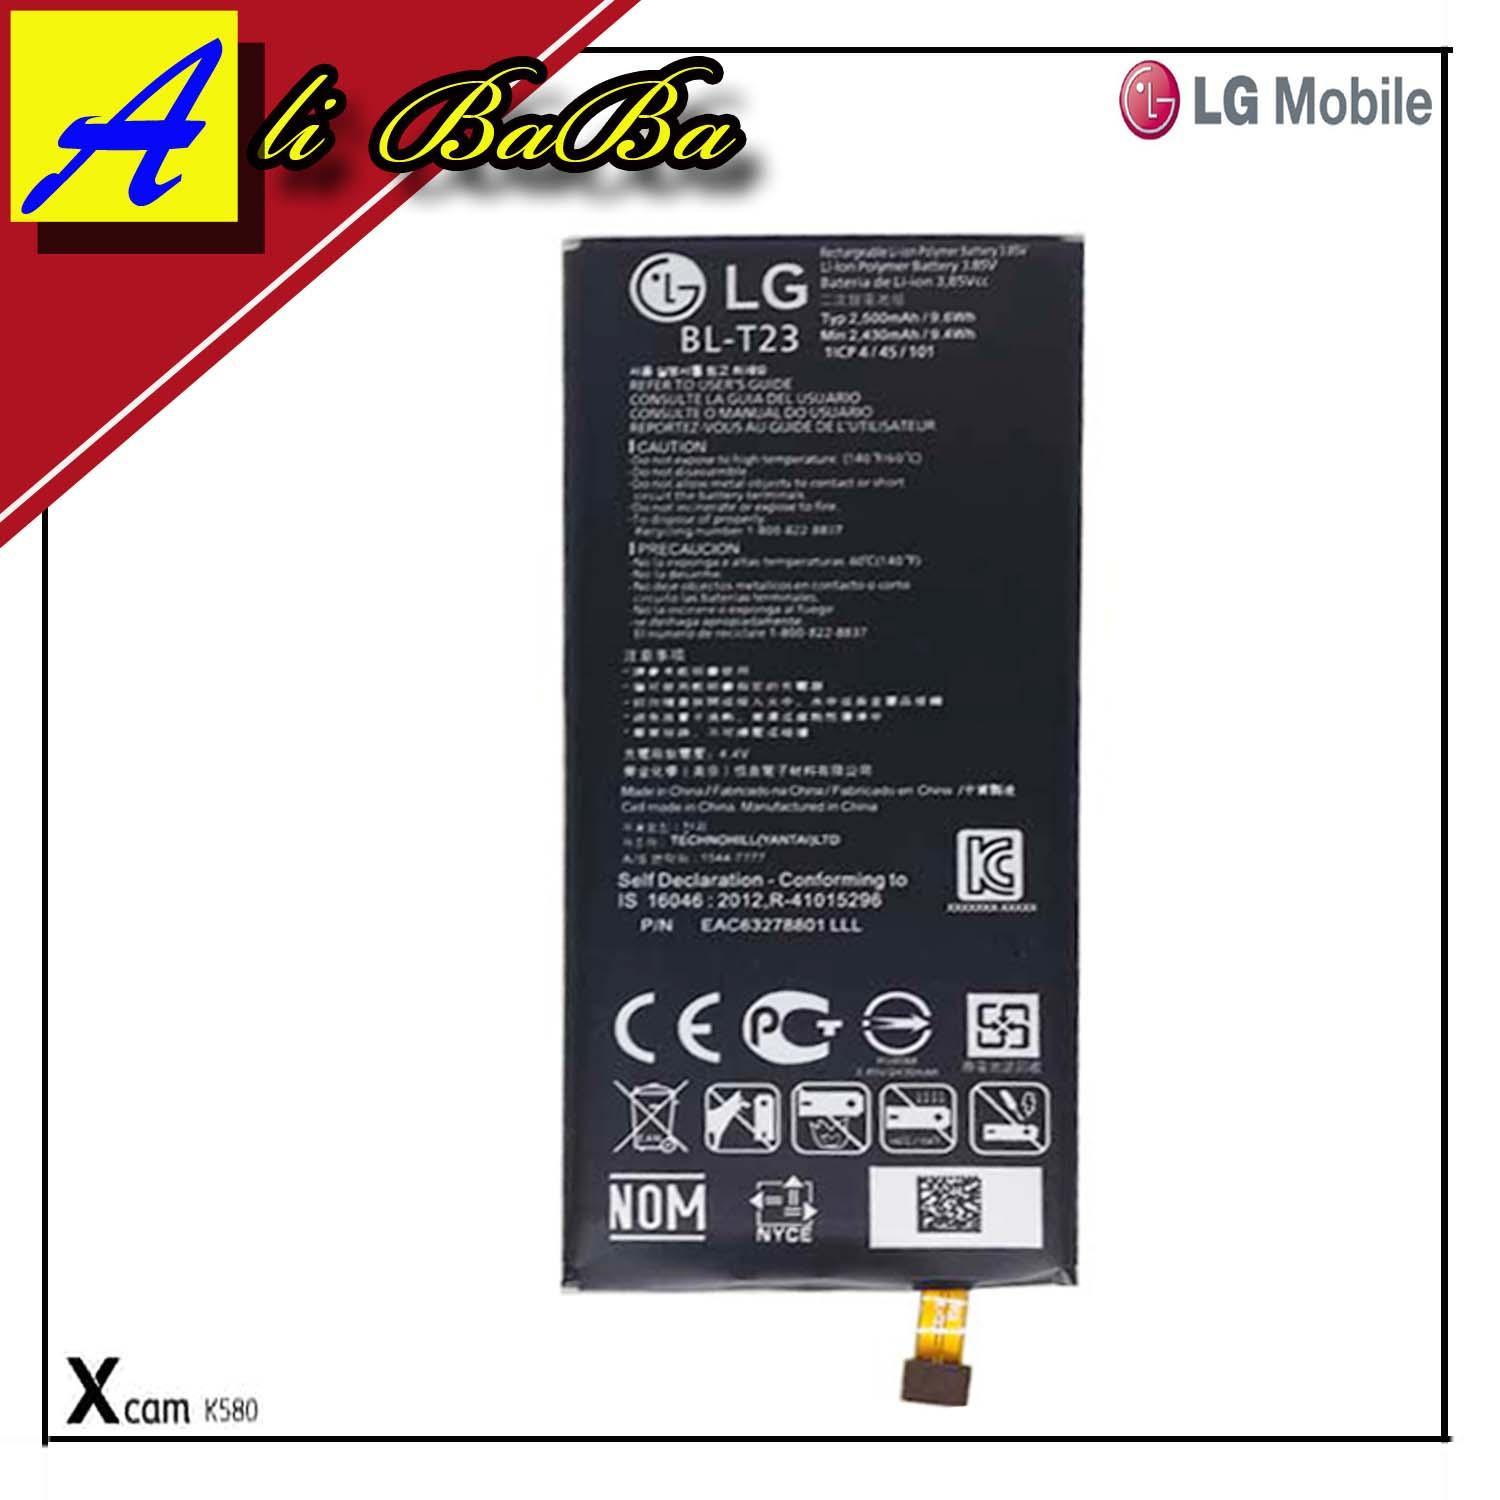 Buy Sell Cheapest Hp Lg X Best Quality Product Deals Indonesian Smartphone Xscreen K500 Resmi Indonesia Baterai Handphone Xcam K580 Bl T23 Batre Cam Battery